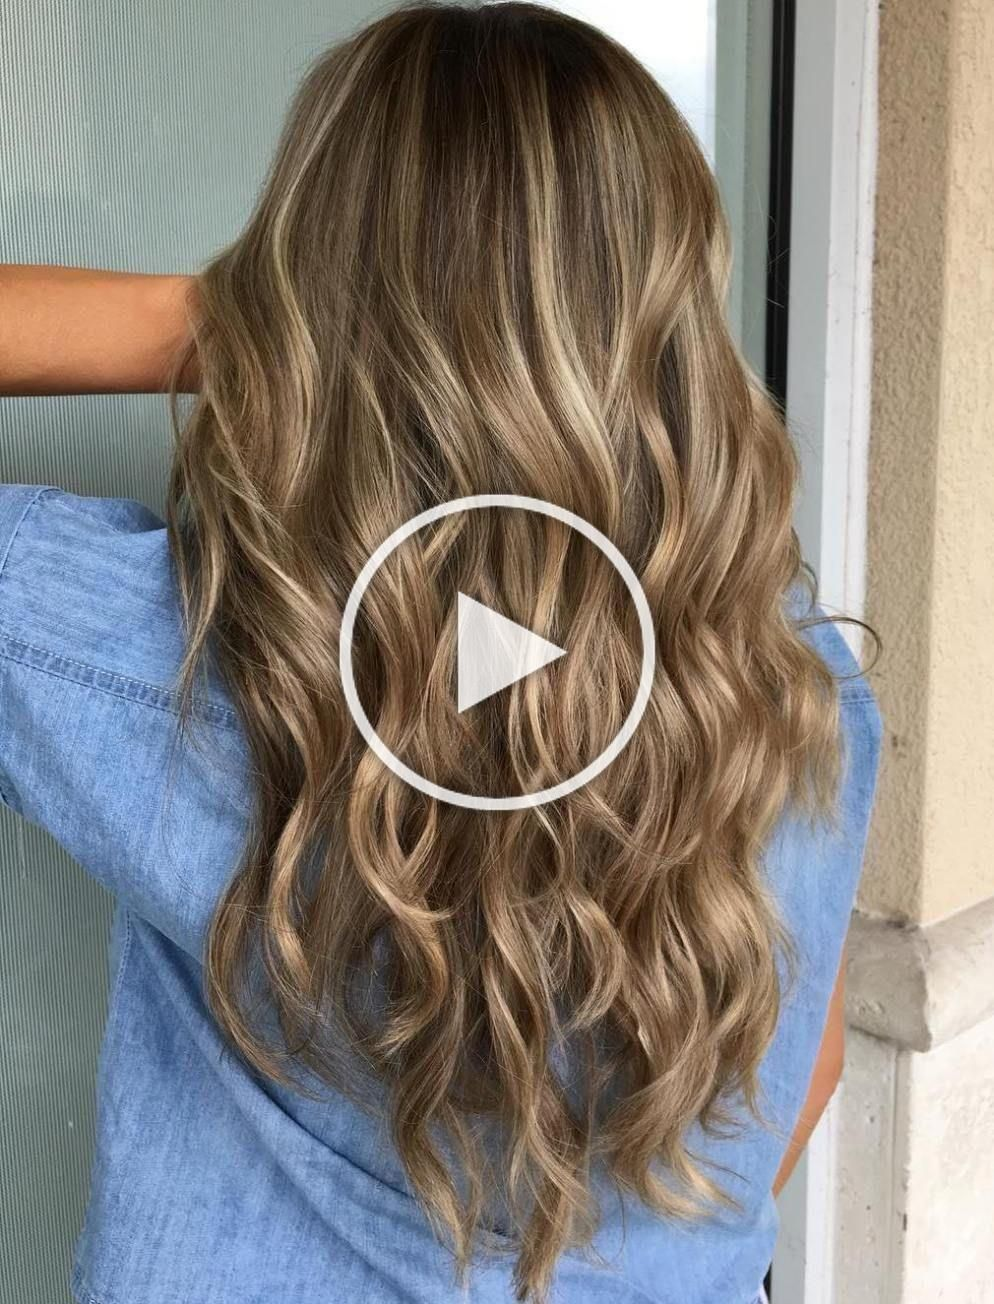 Brown Hair With Beige And Platinum Highlights…REALLY love this!!!😍😍😍